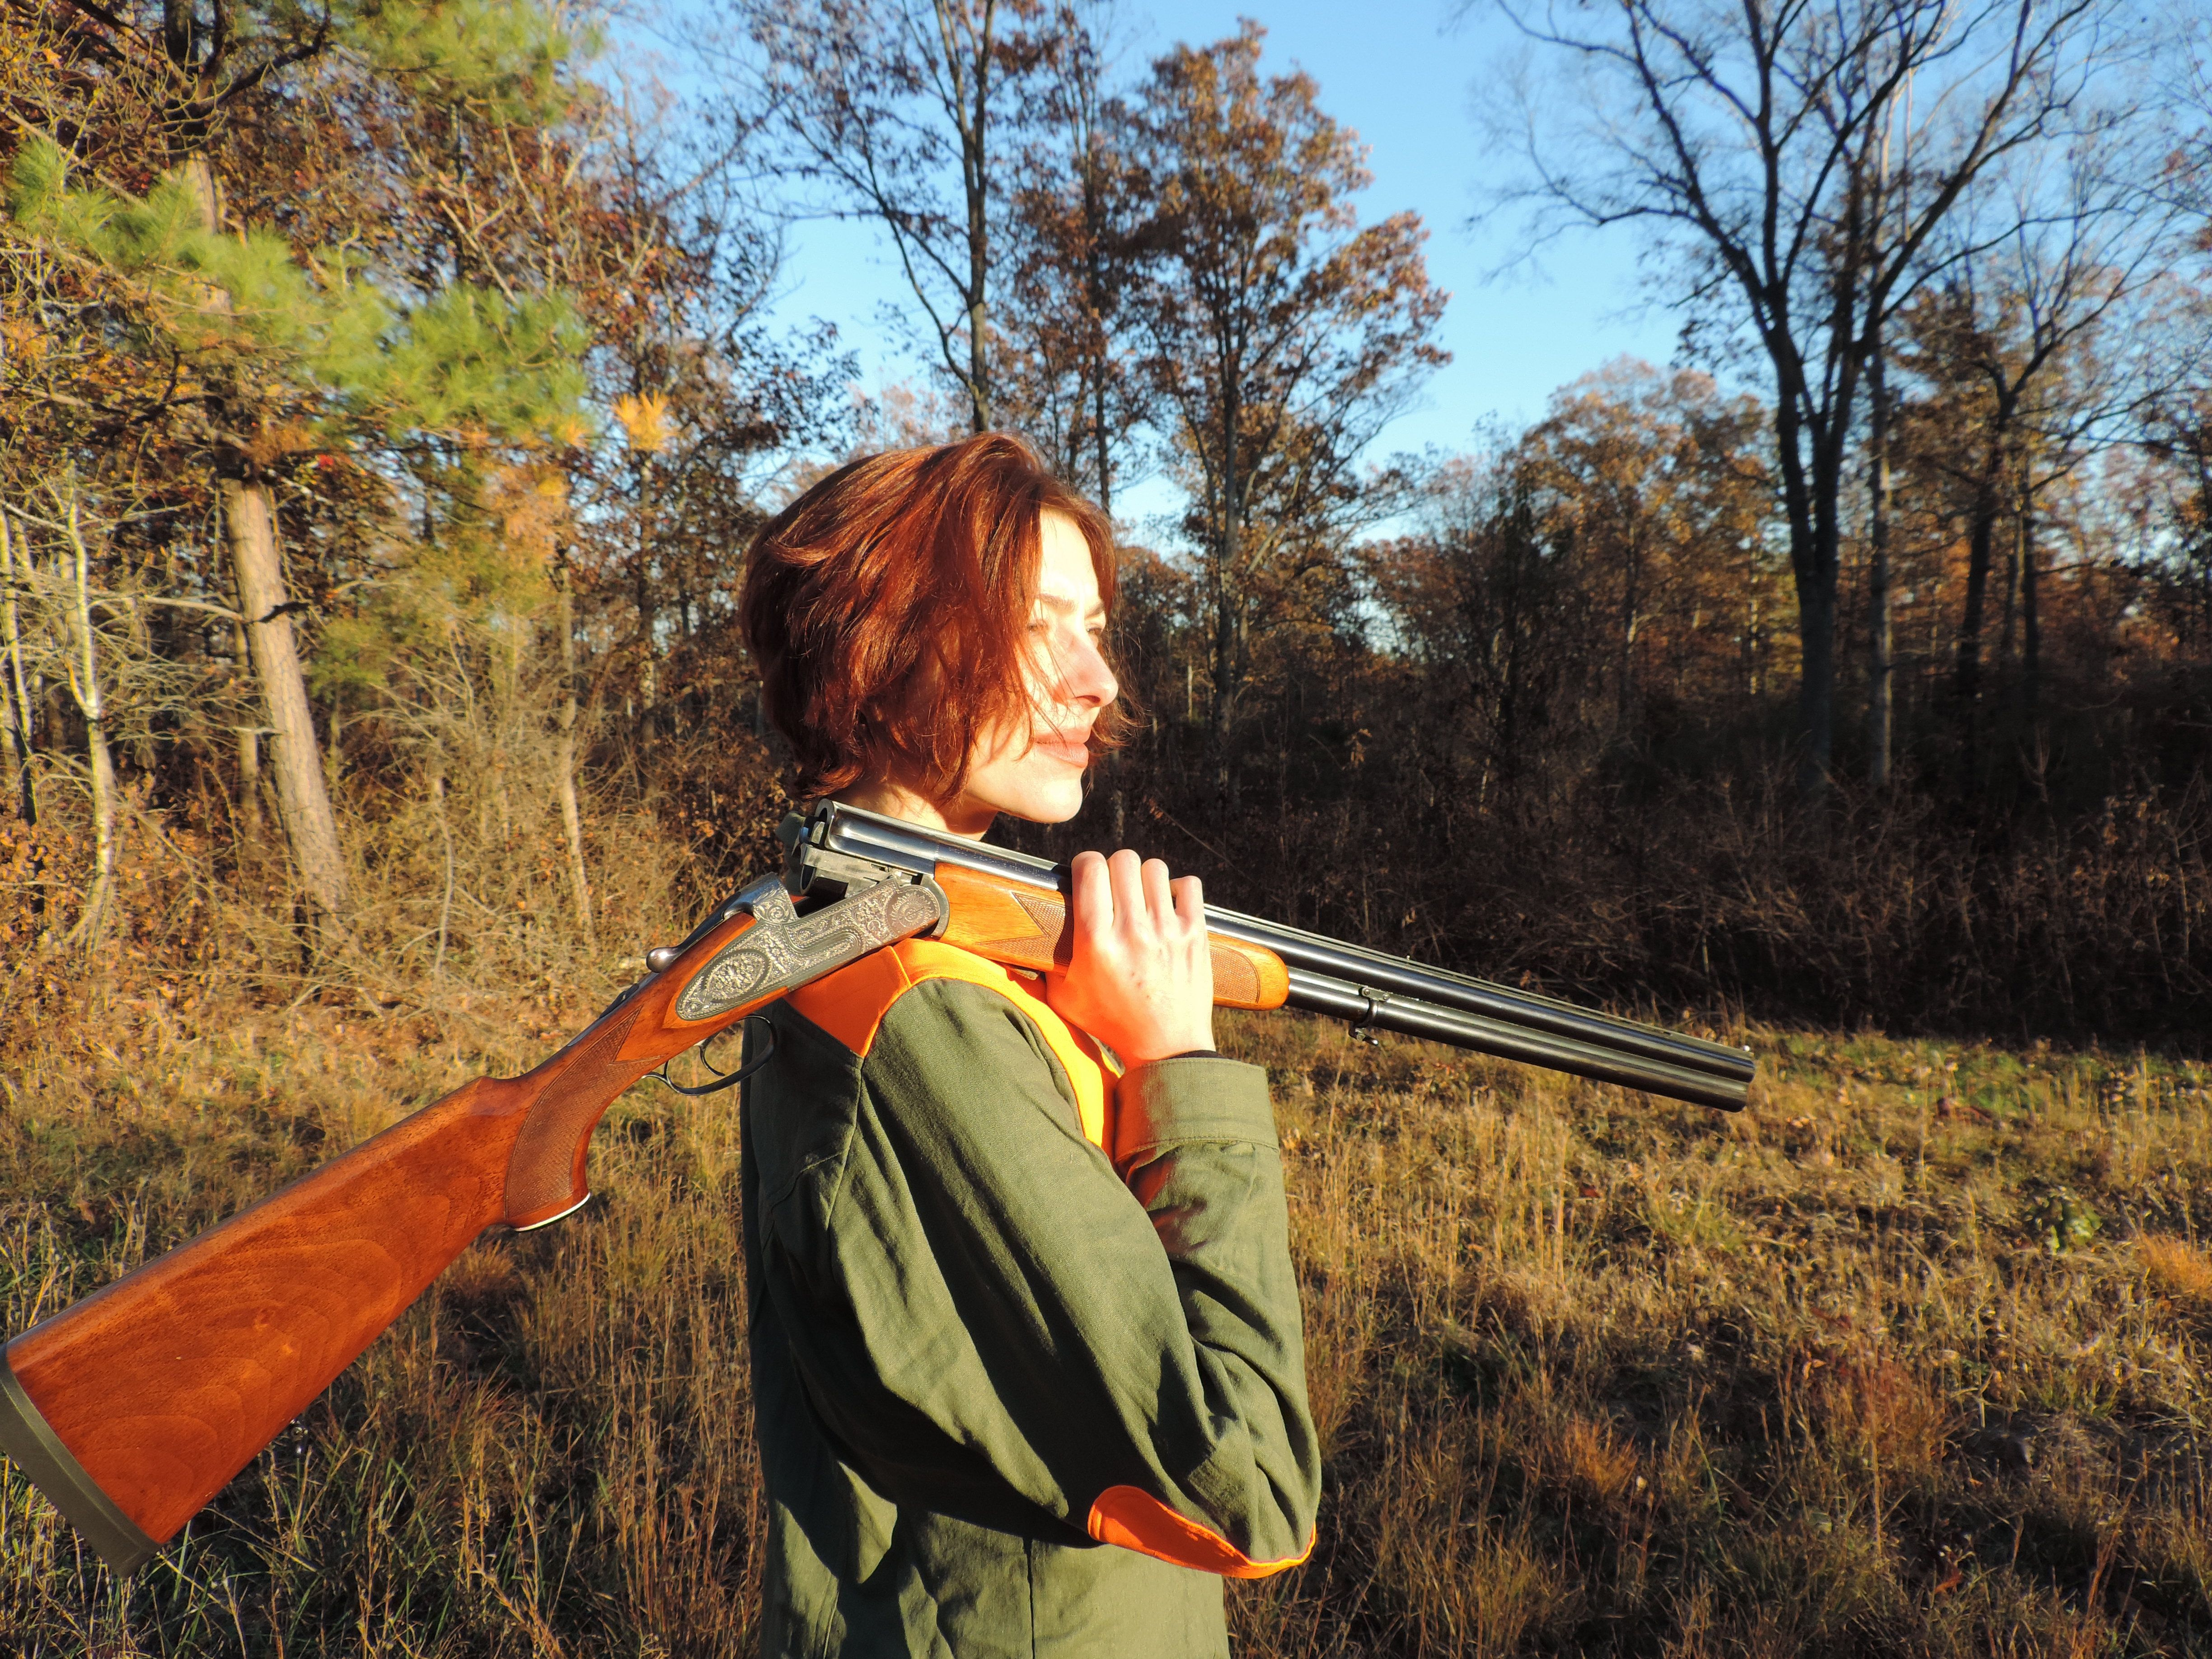 Pin by Apalain on Shooting Shirts for Ladies Hunting